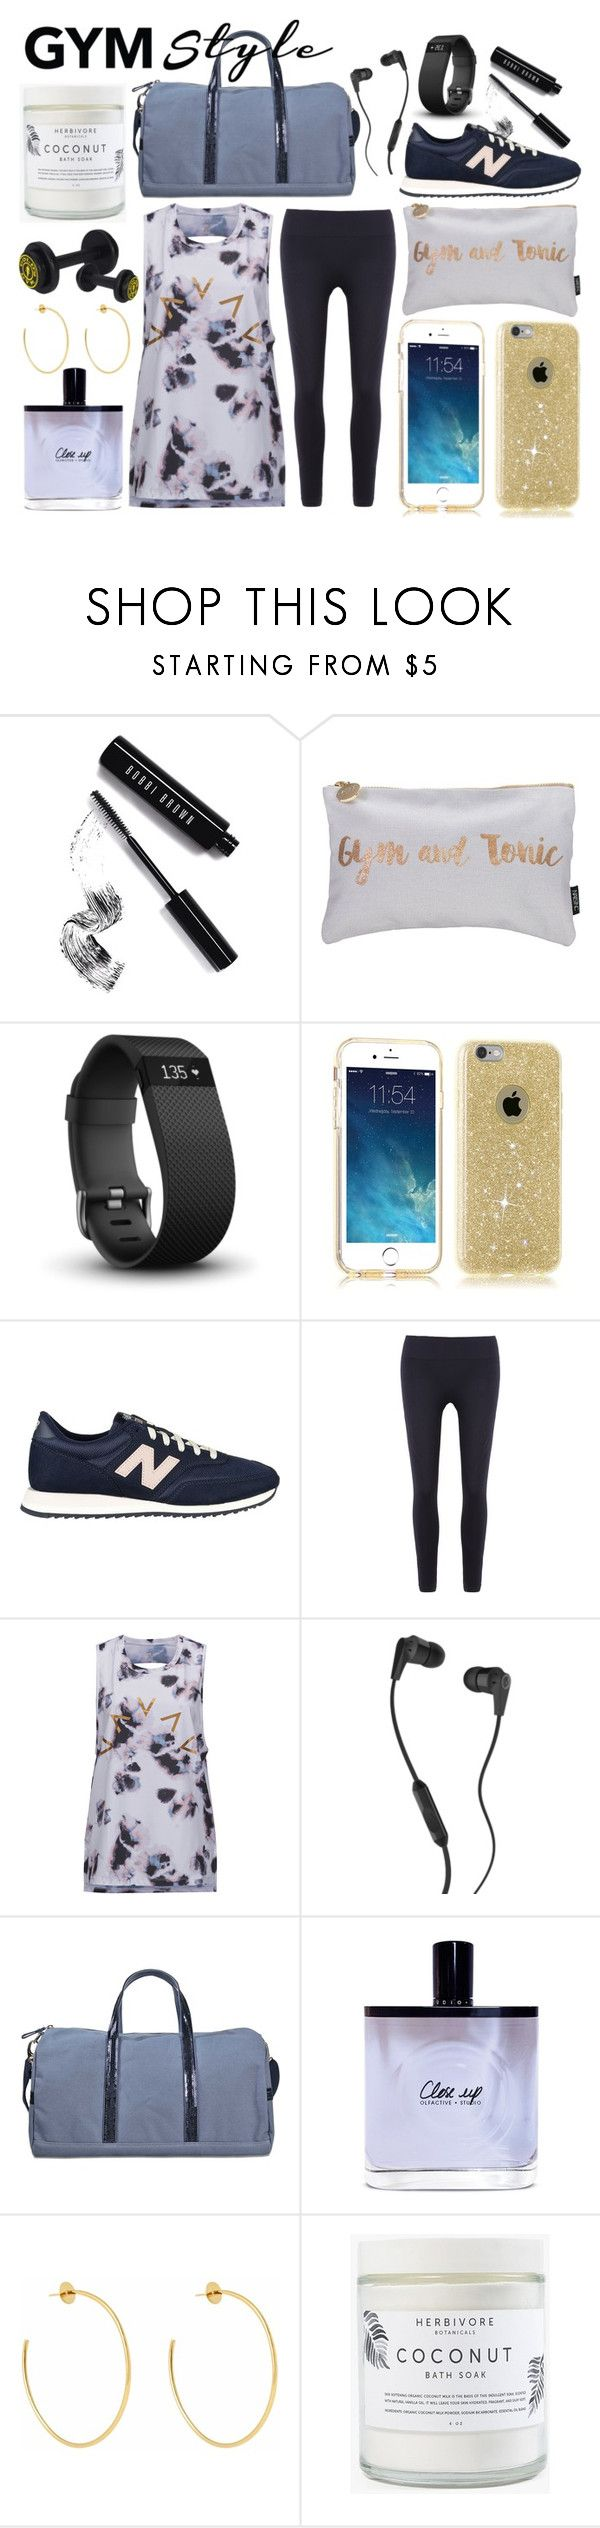 """805"" by robertaelisa ❤ liked on Polyvore featuring Bobbi Brown Cosmetics, Nails Inc., Fitbit, New Balance, Varley, Skullcandy, Vanessa Bruno, Olfactive Studio and Herbivore"